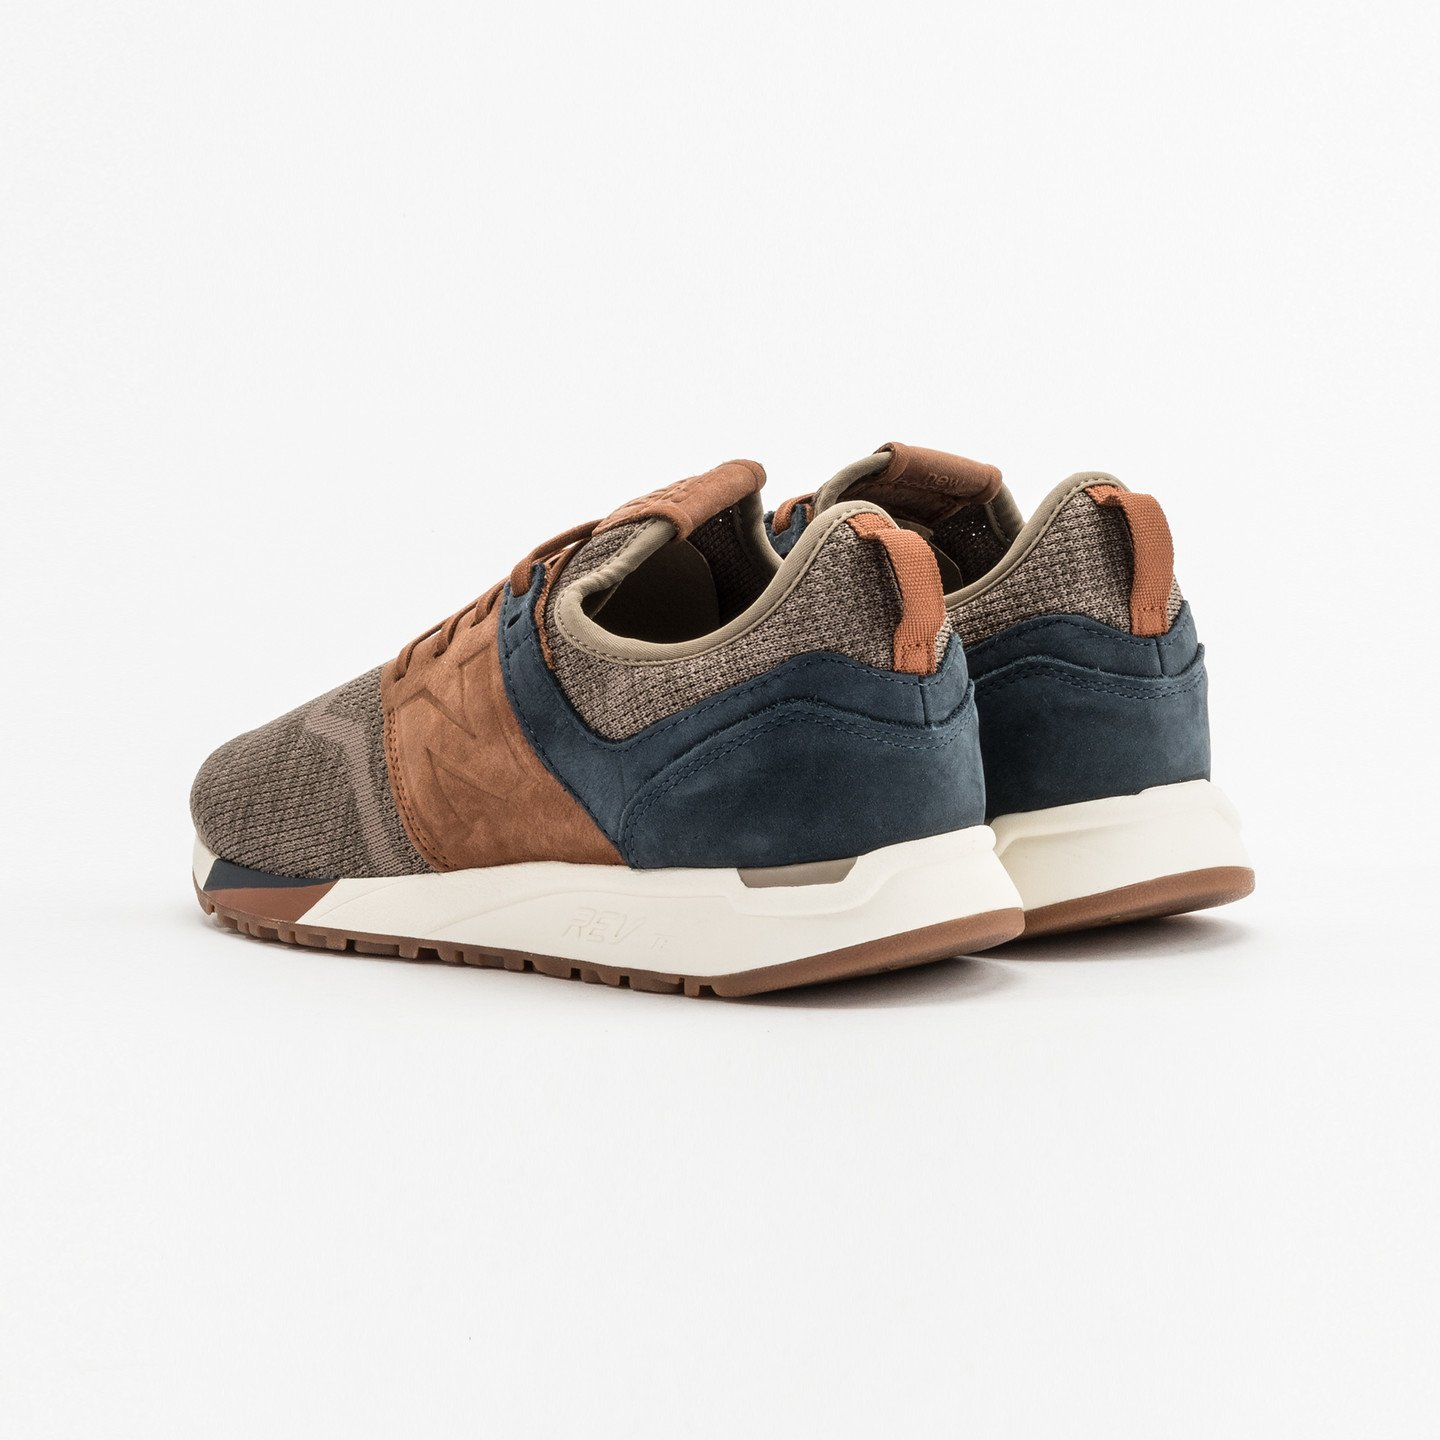 New Balance MRL247 Brown / Navy / Gum MRL247LB